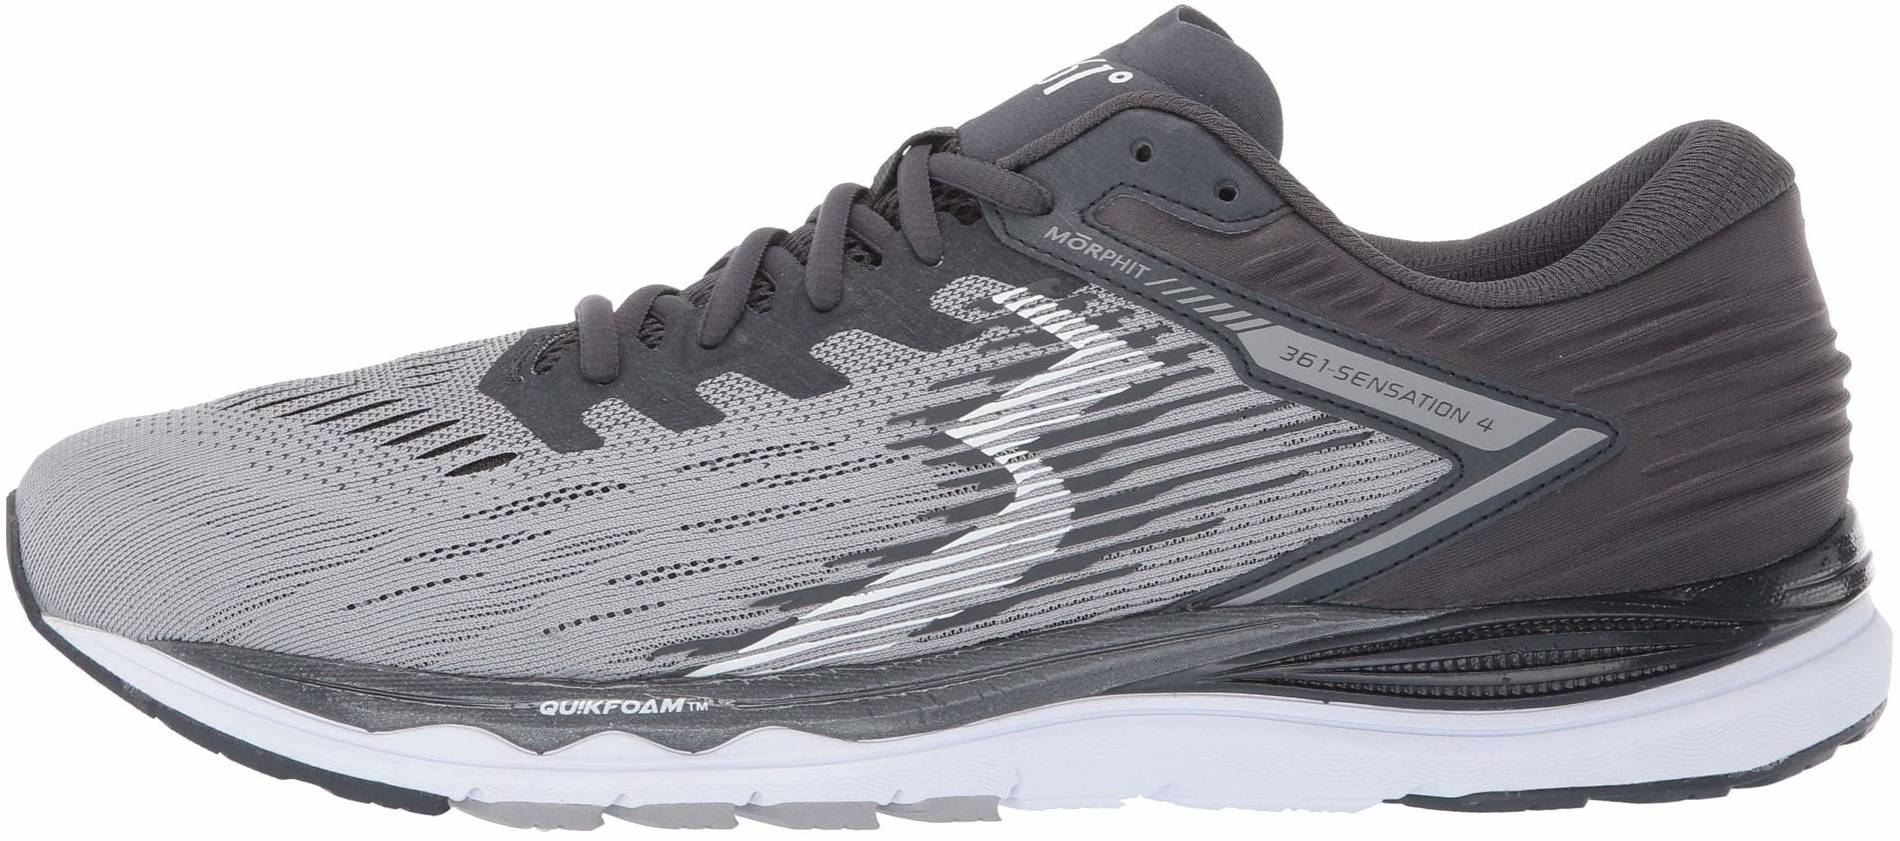 361 stability shoes